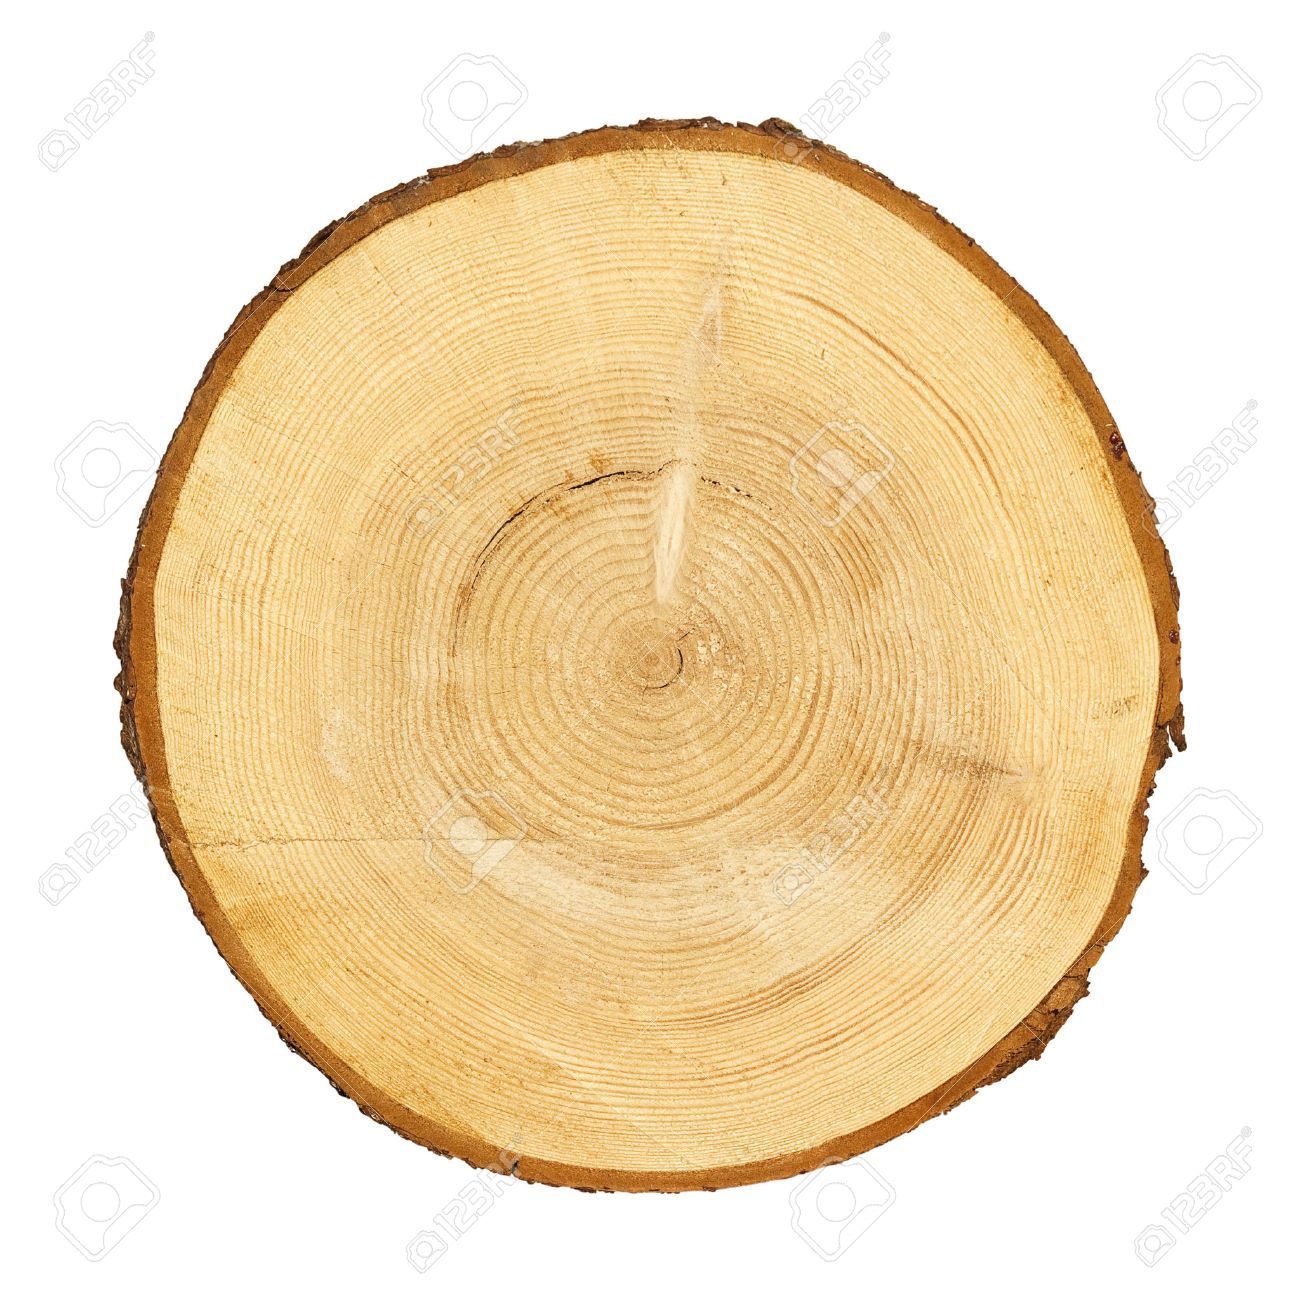 tree trunk cross section isolated on white clipping path included